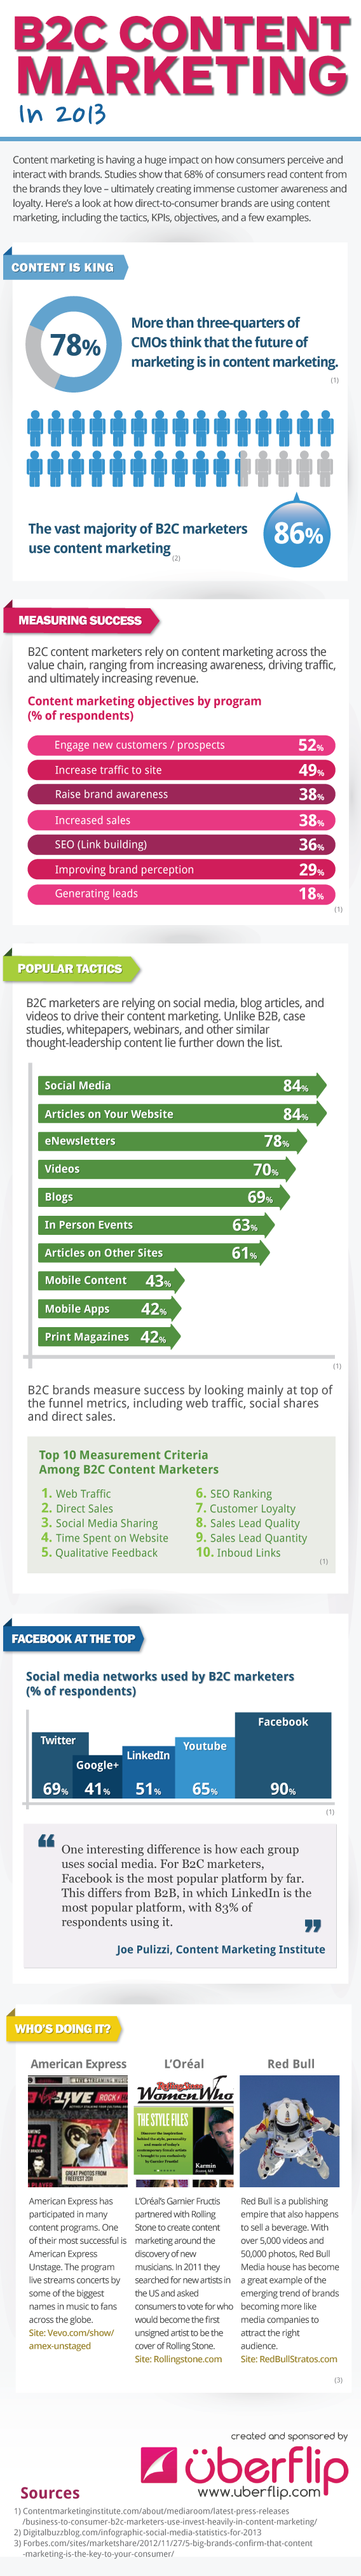 b2c content marketing 2013 infographic